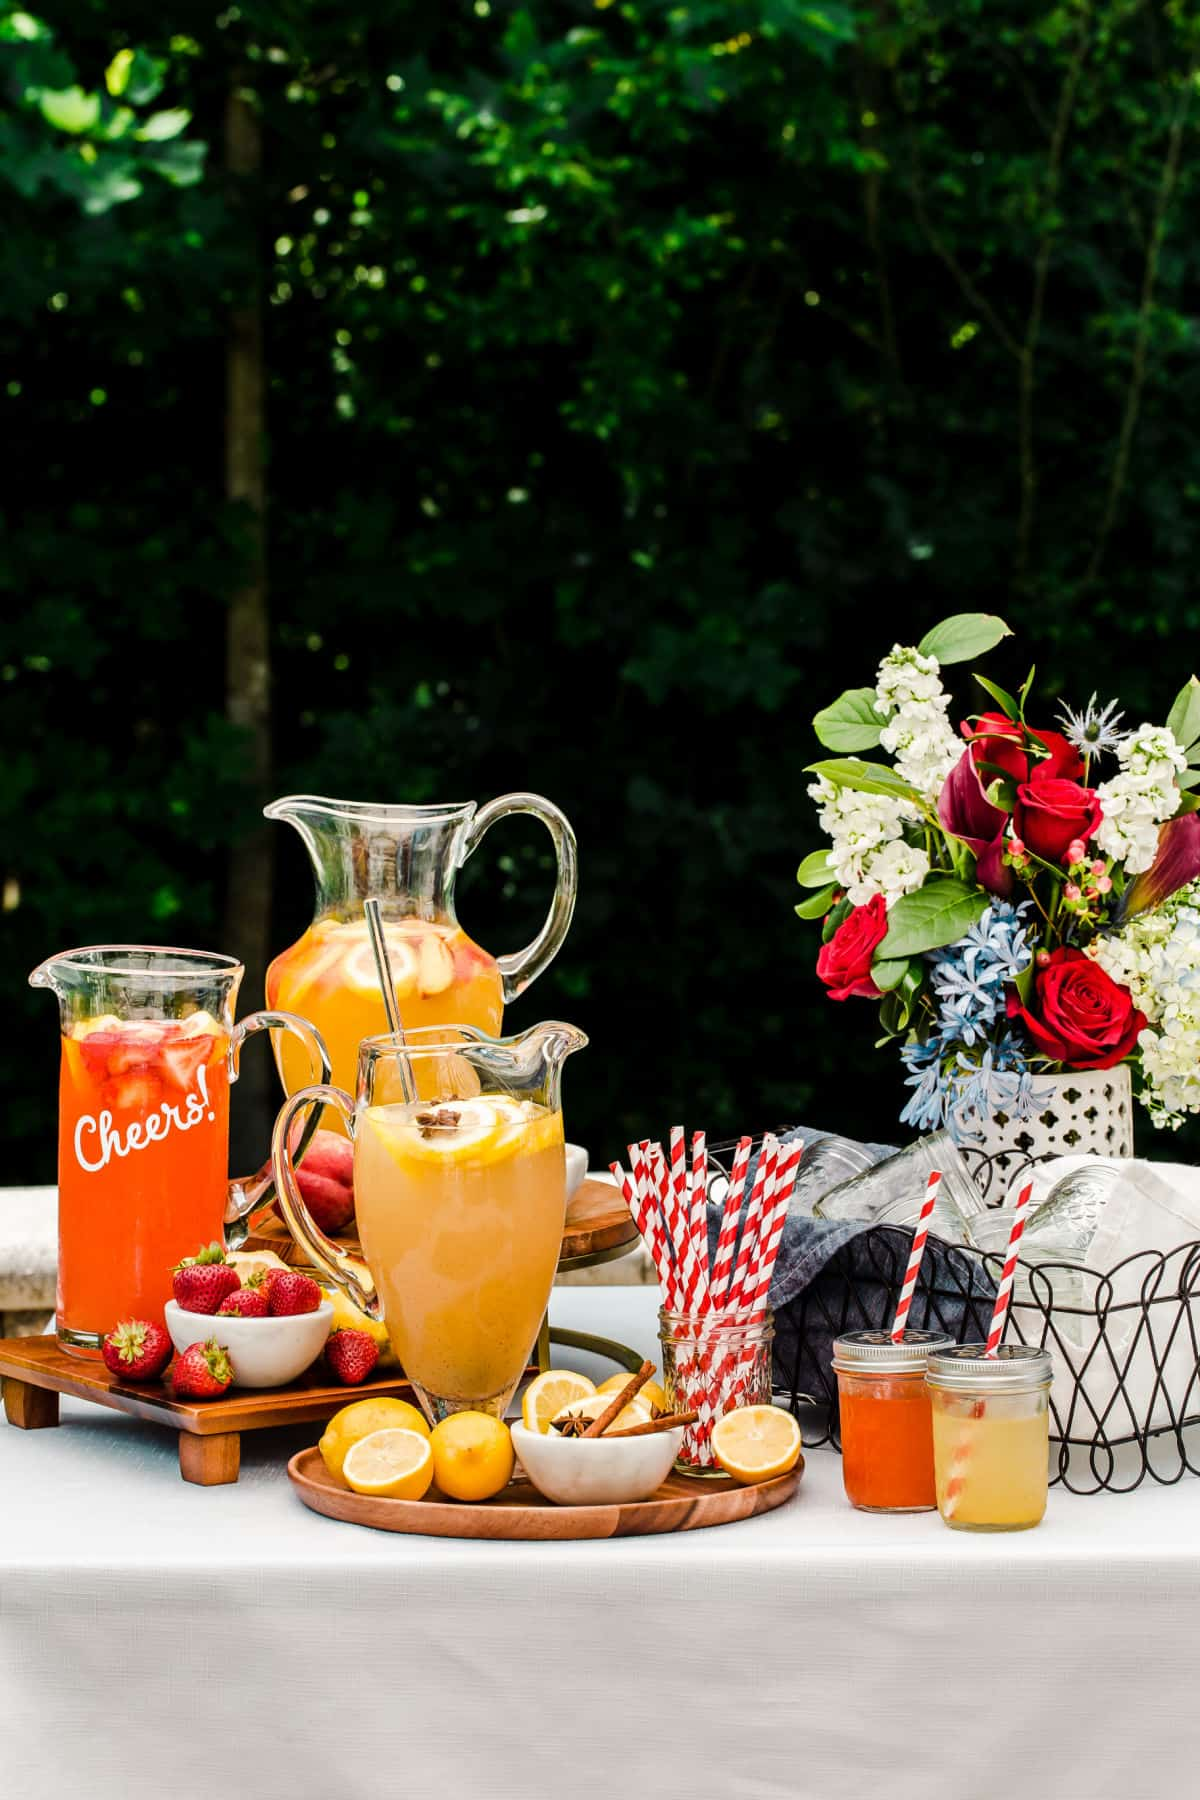 lemonade bar set up outside with 3 pitchers of different flavors, and fruit garnish